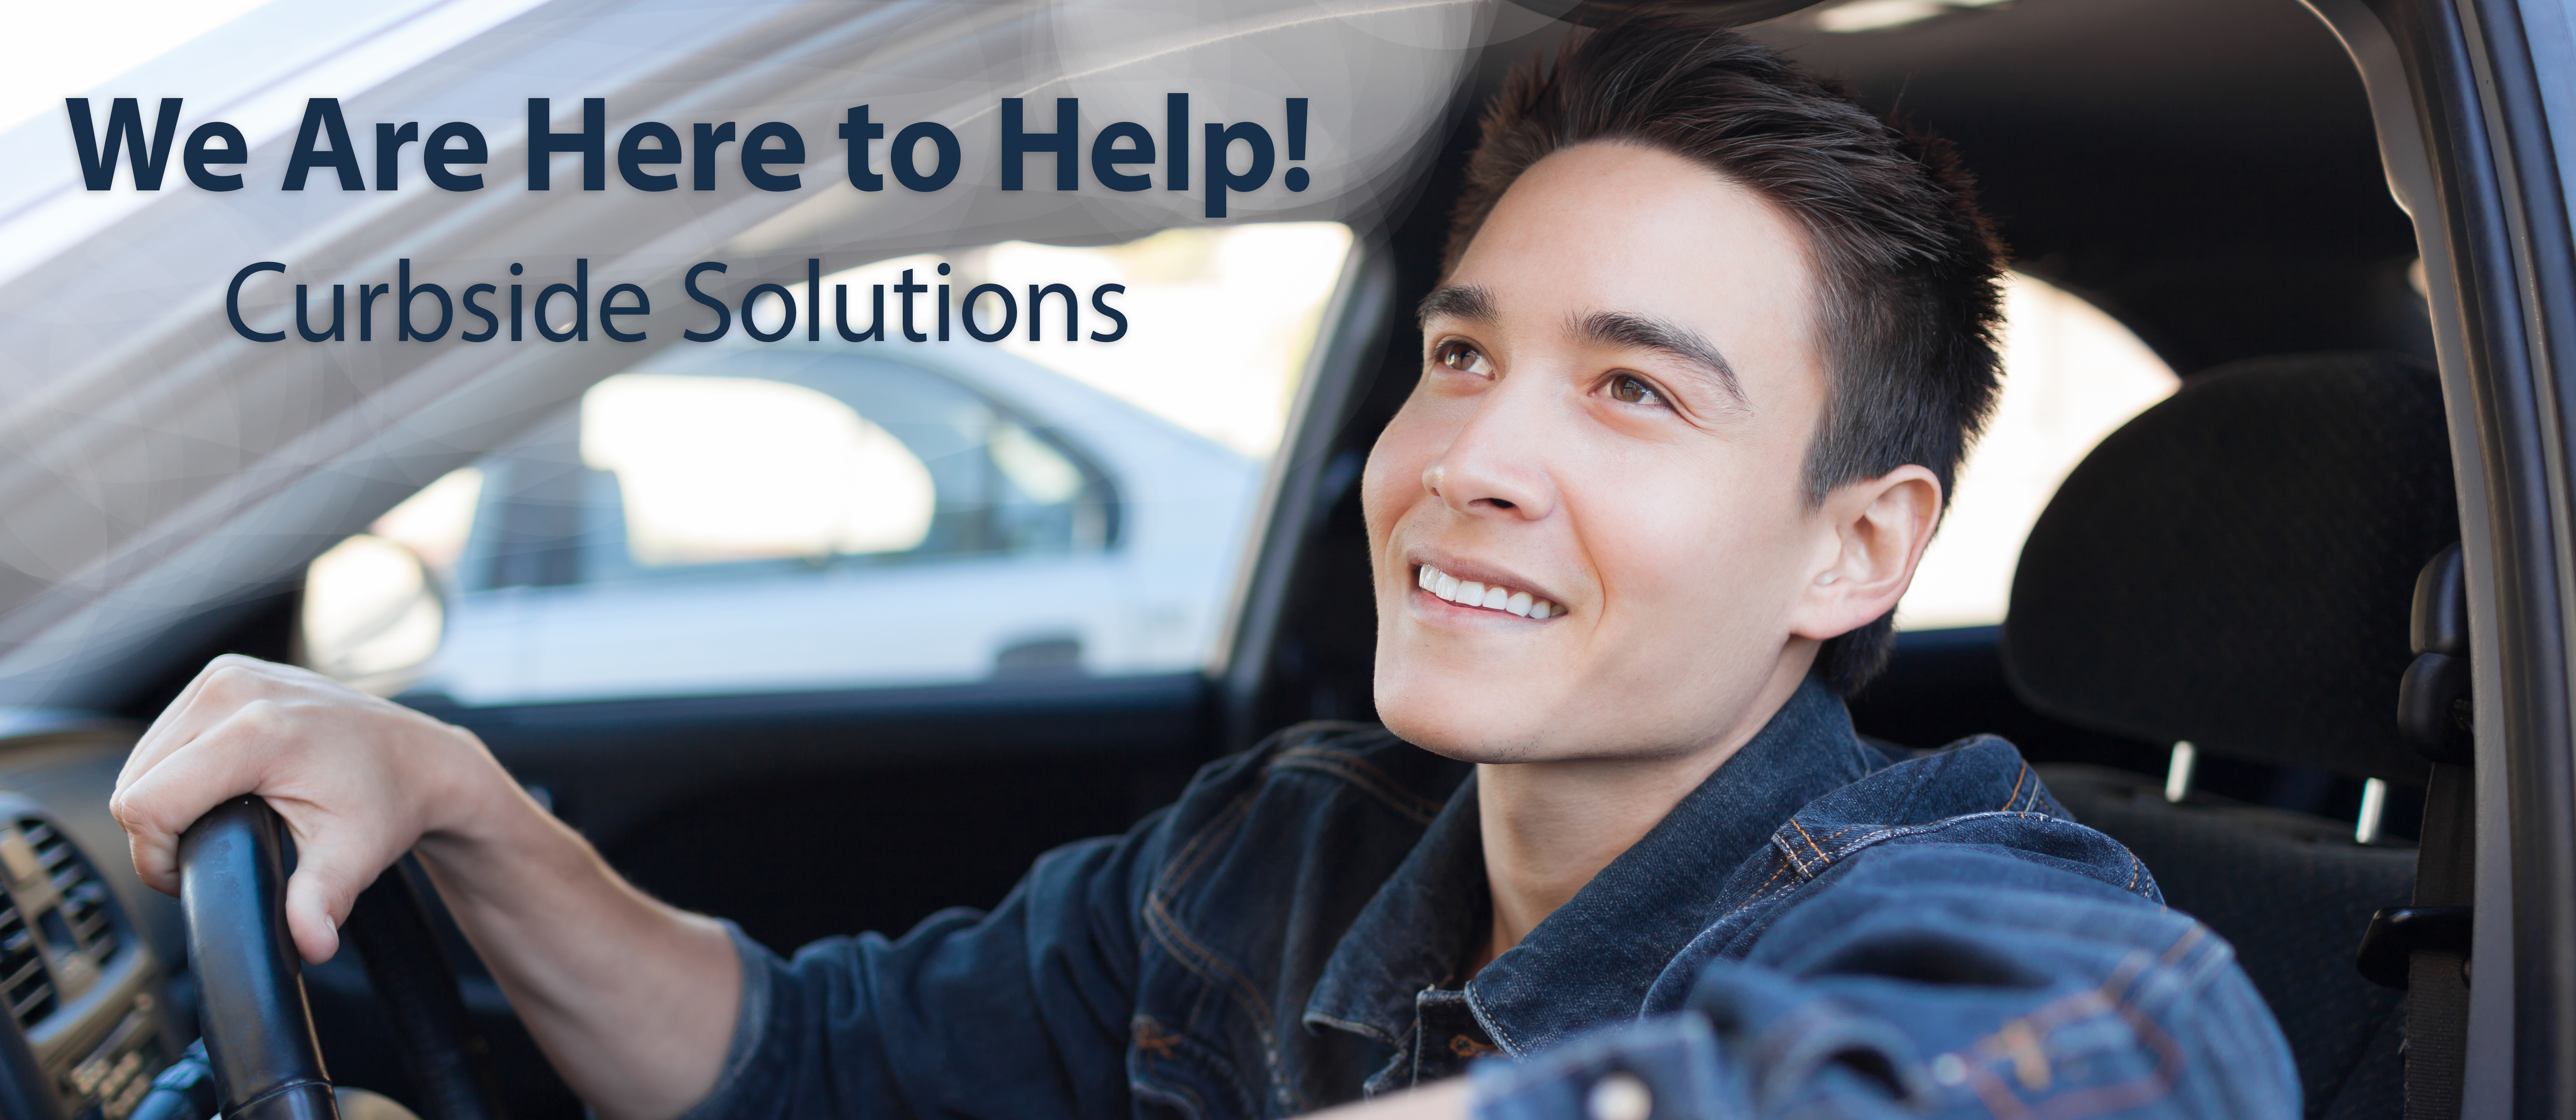 guy-in-car-page-banner.jpg